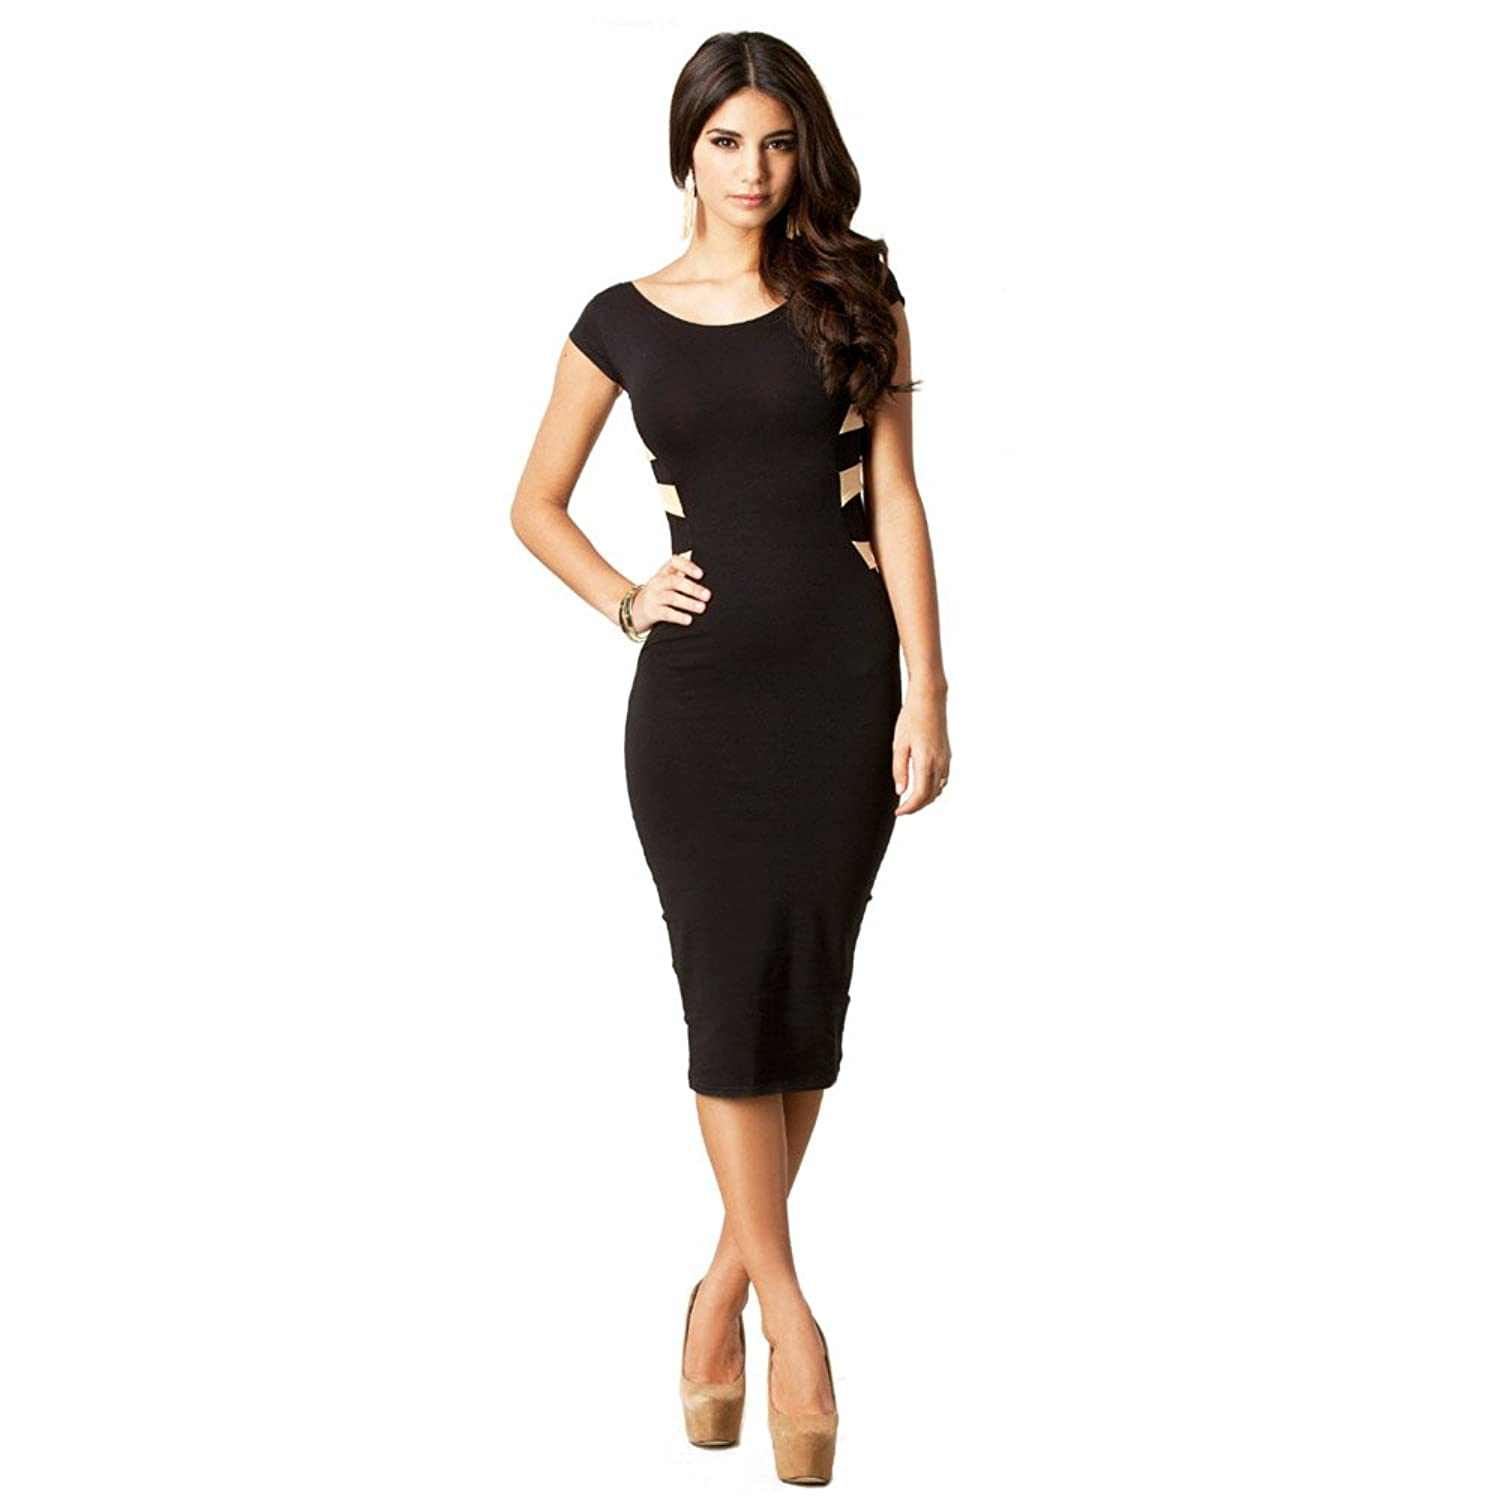 Imixcity Sexy Women Lace Short Sleeve Slim Fashion Bodycon Party Cocktail Evening Dress